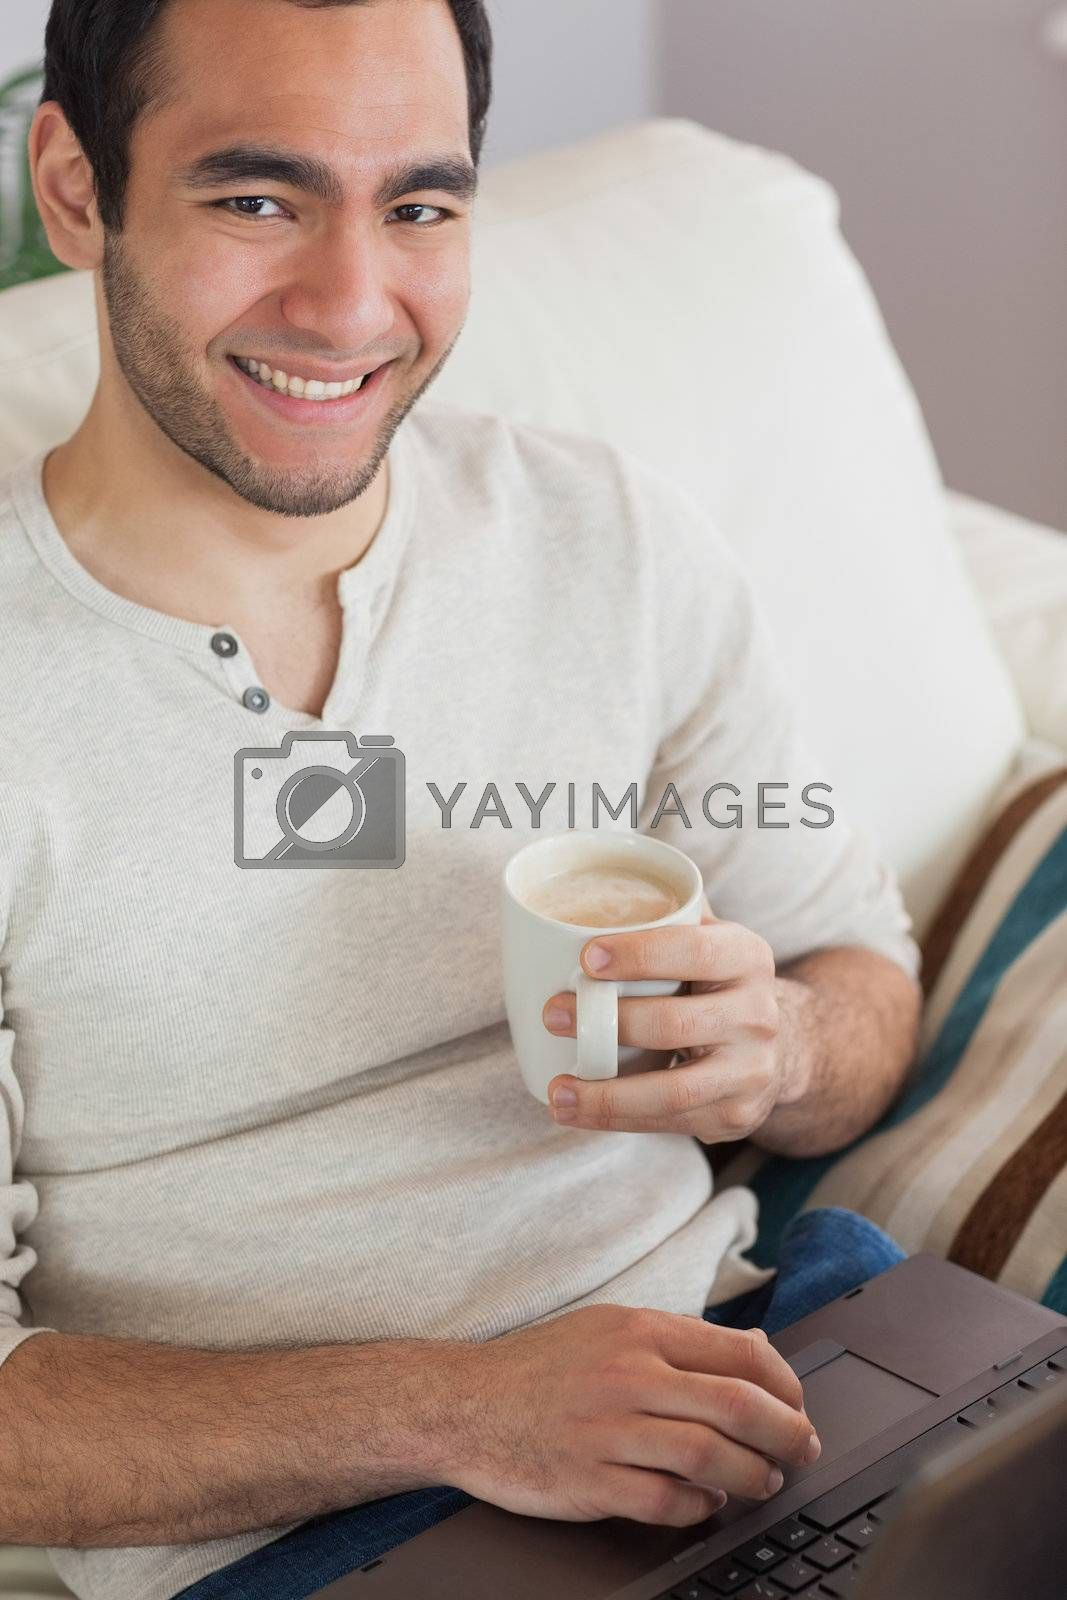 Smiling attractive man drinking coffee while using his laptop by Wavebreakmedia